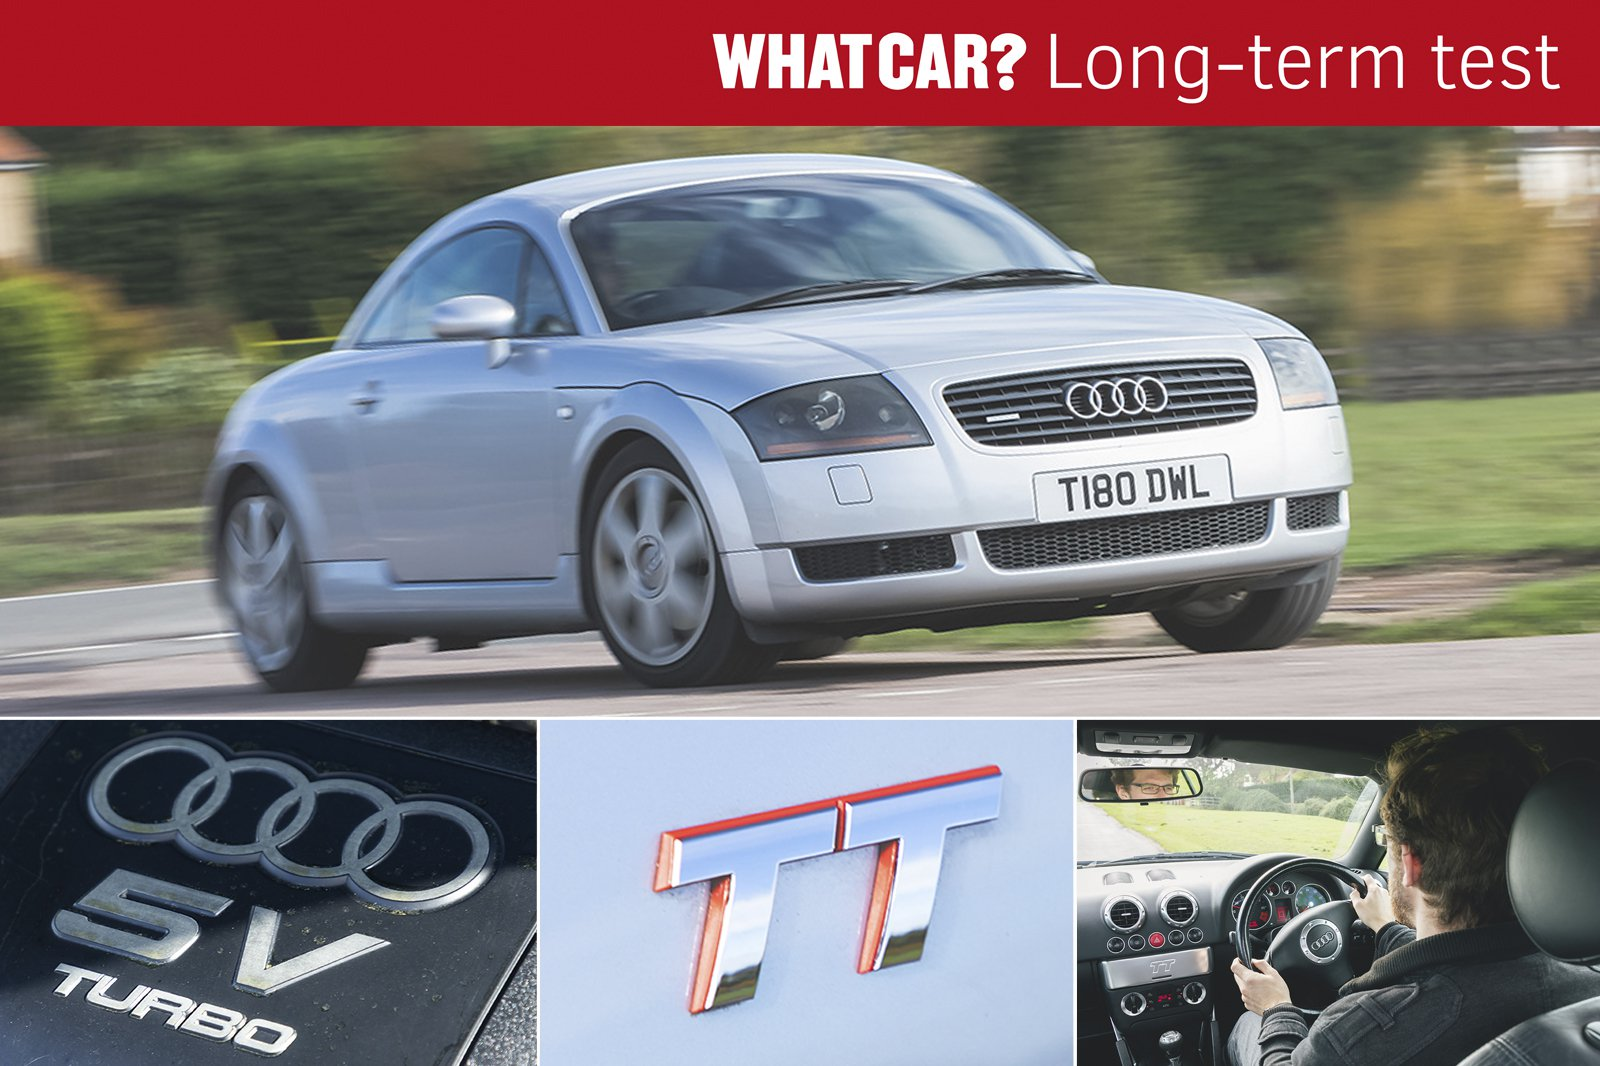 Used Audi TT long-term test review main image